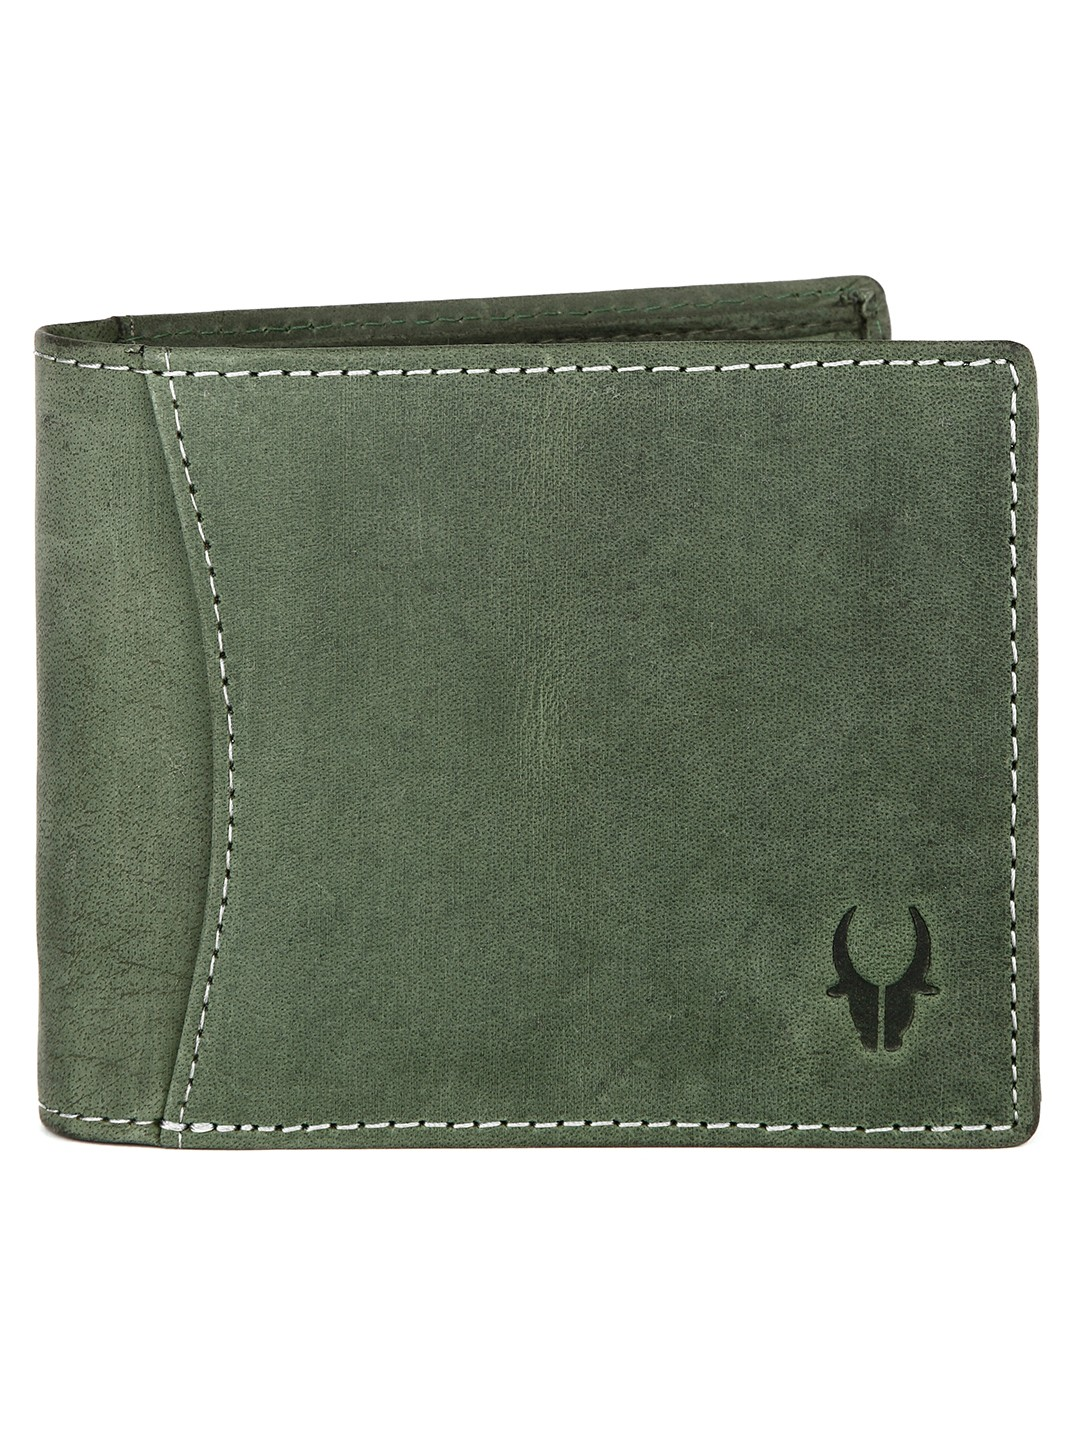 WildHorn | WildHorn RFID Protected High Quality Genuine Leather Green Wallet for Men